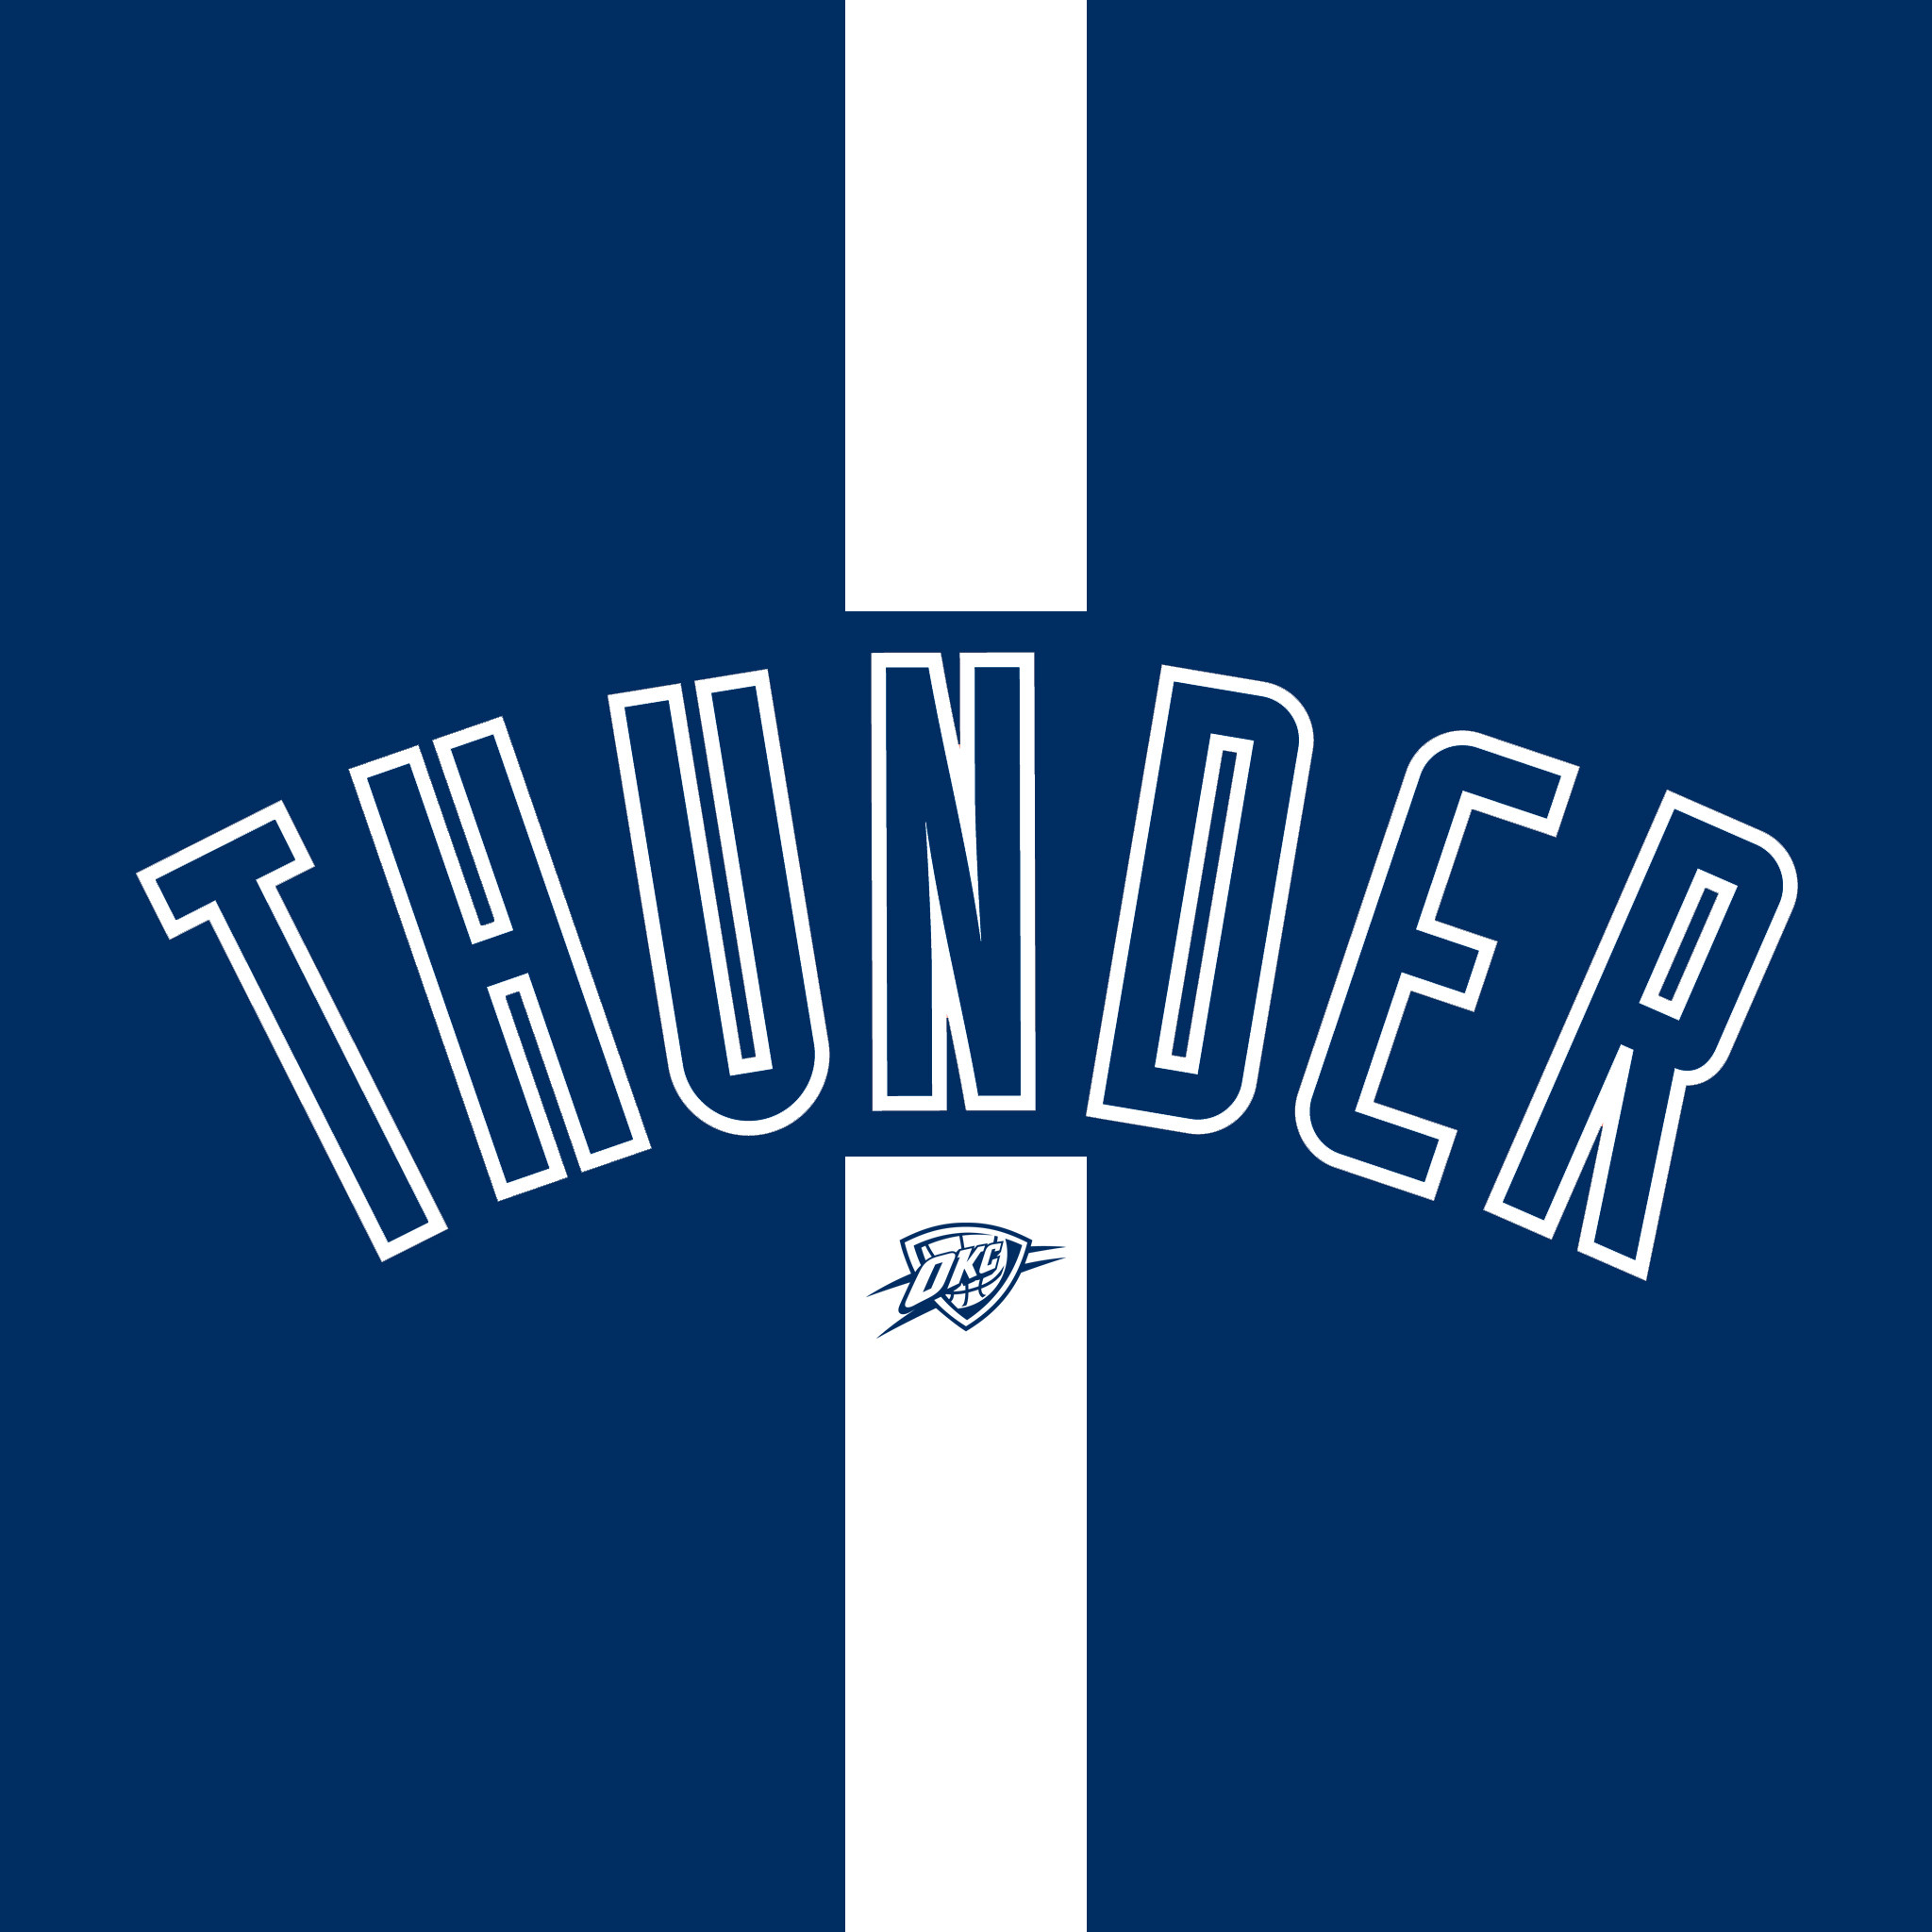 2048x2048 Okc Thunder Wallpaper